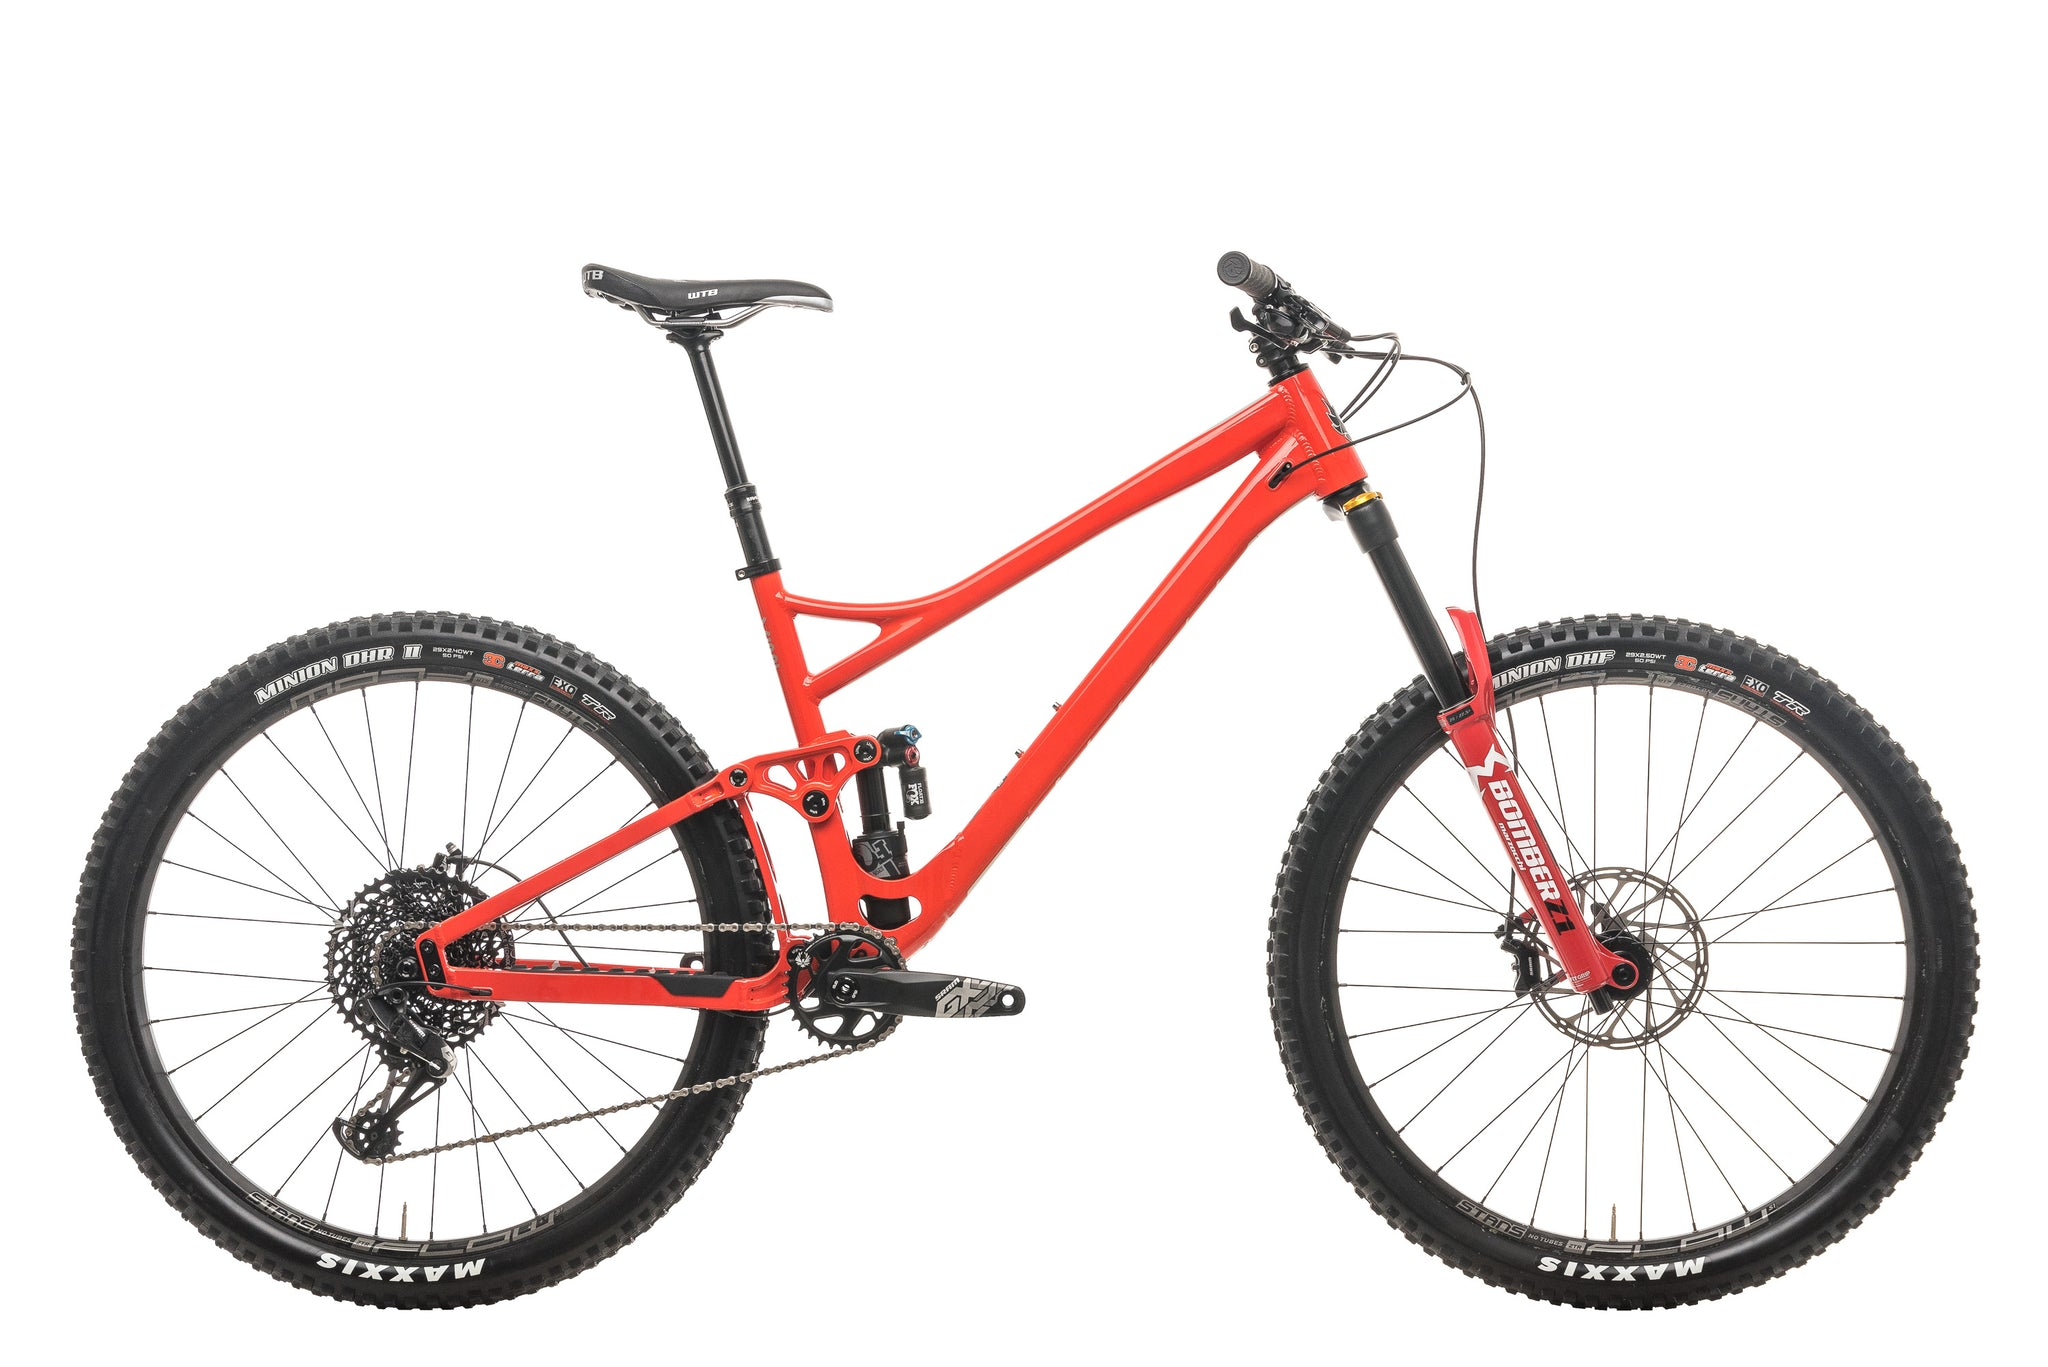 Banshee titan enduro mountain bike